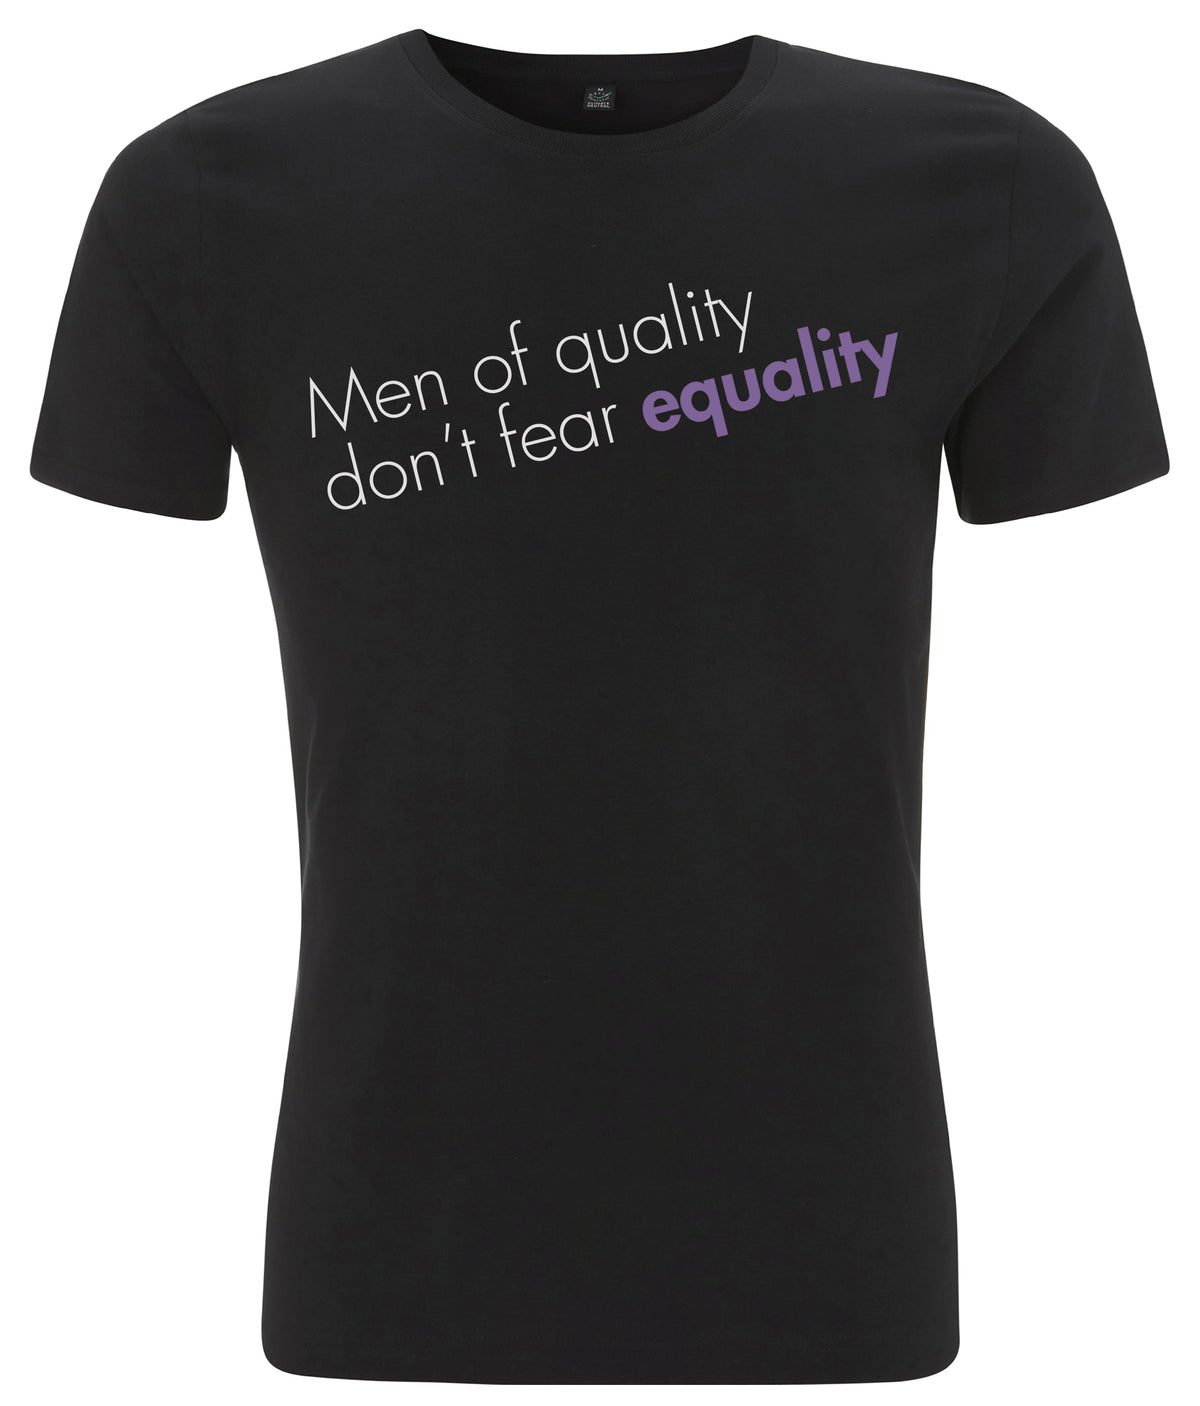 Men Of Quality Don't Fear Equality Organic Mens Feminist T Shirt Black